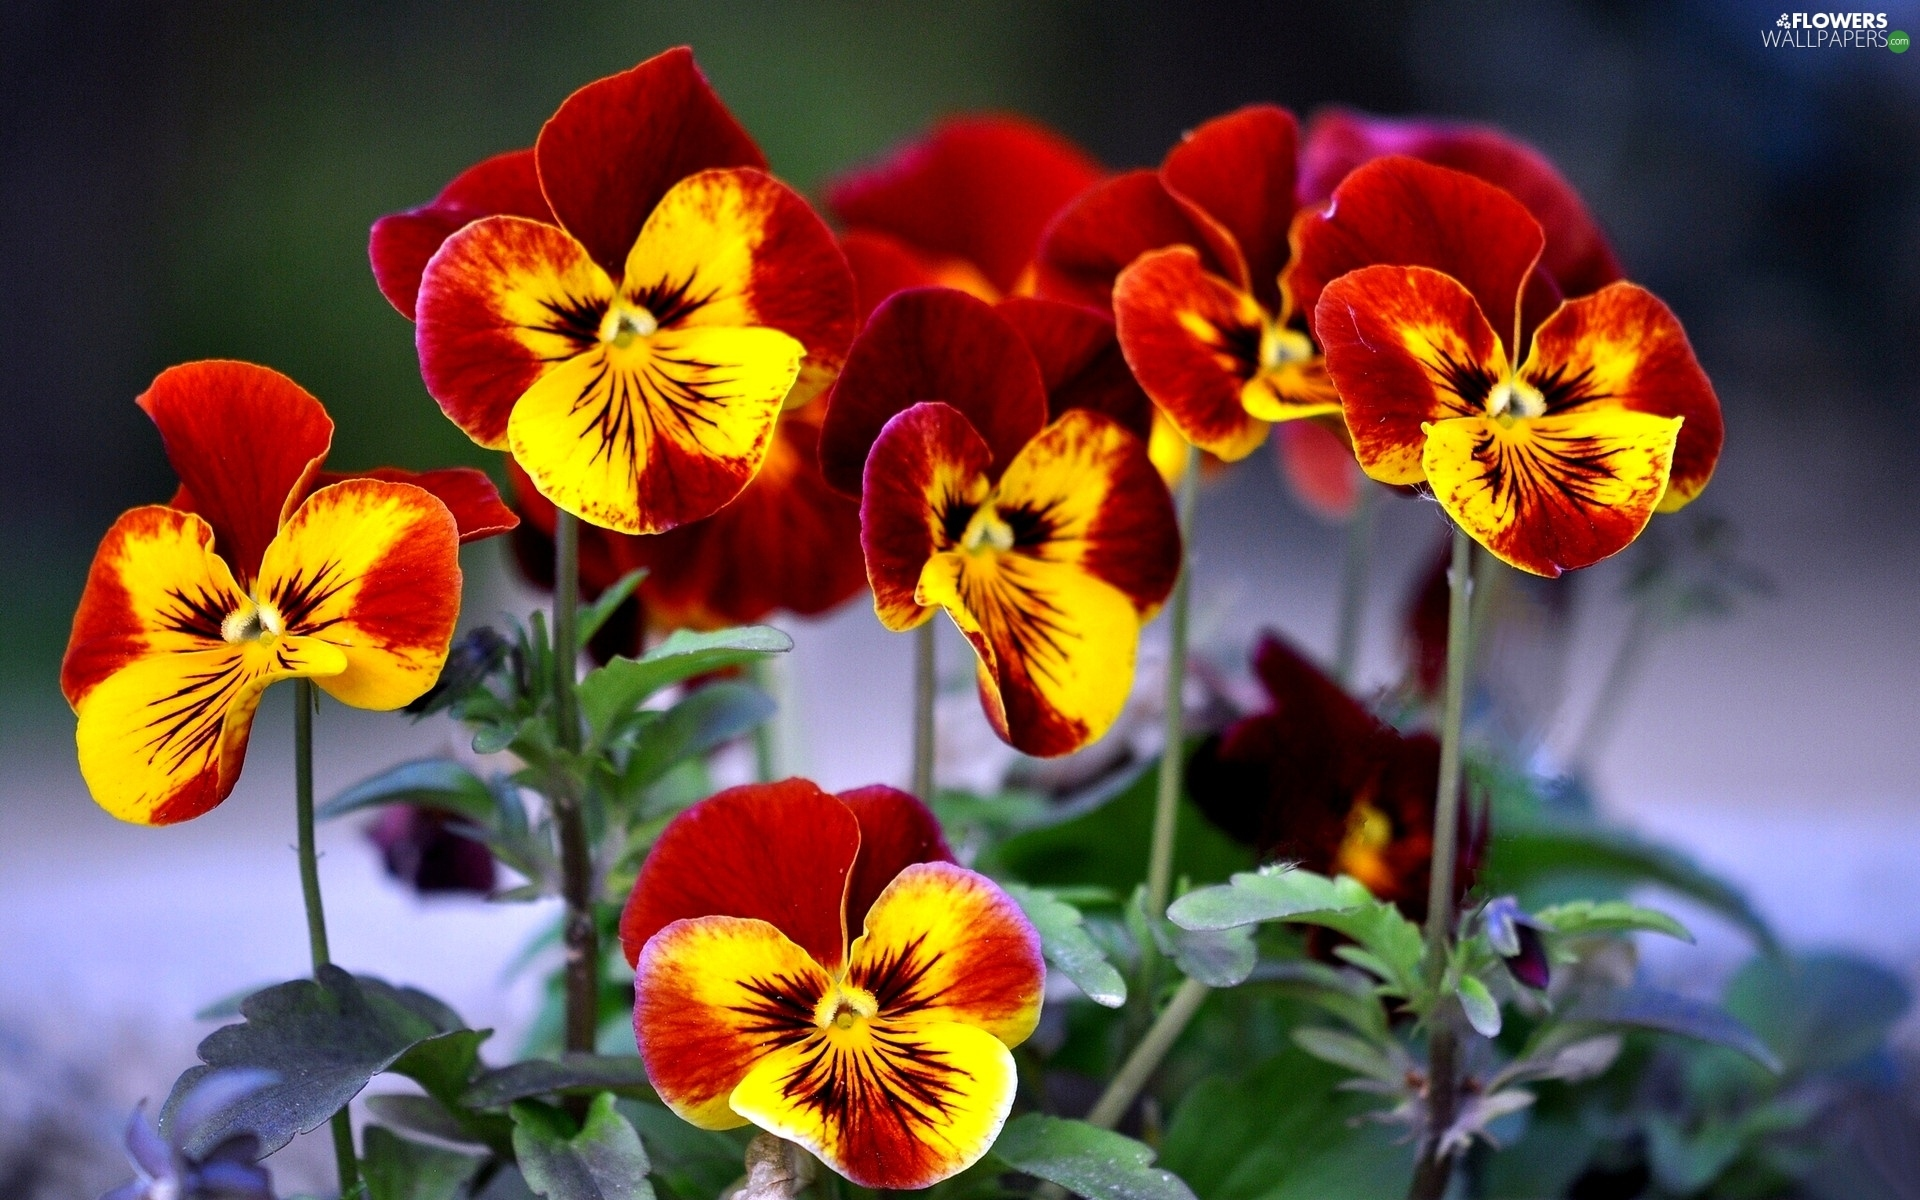 Yellow, pansies, maroon - Flowers wallpapers: 1920x1200